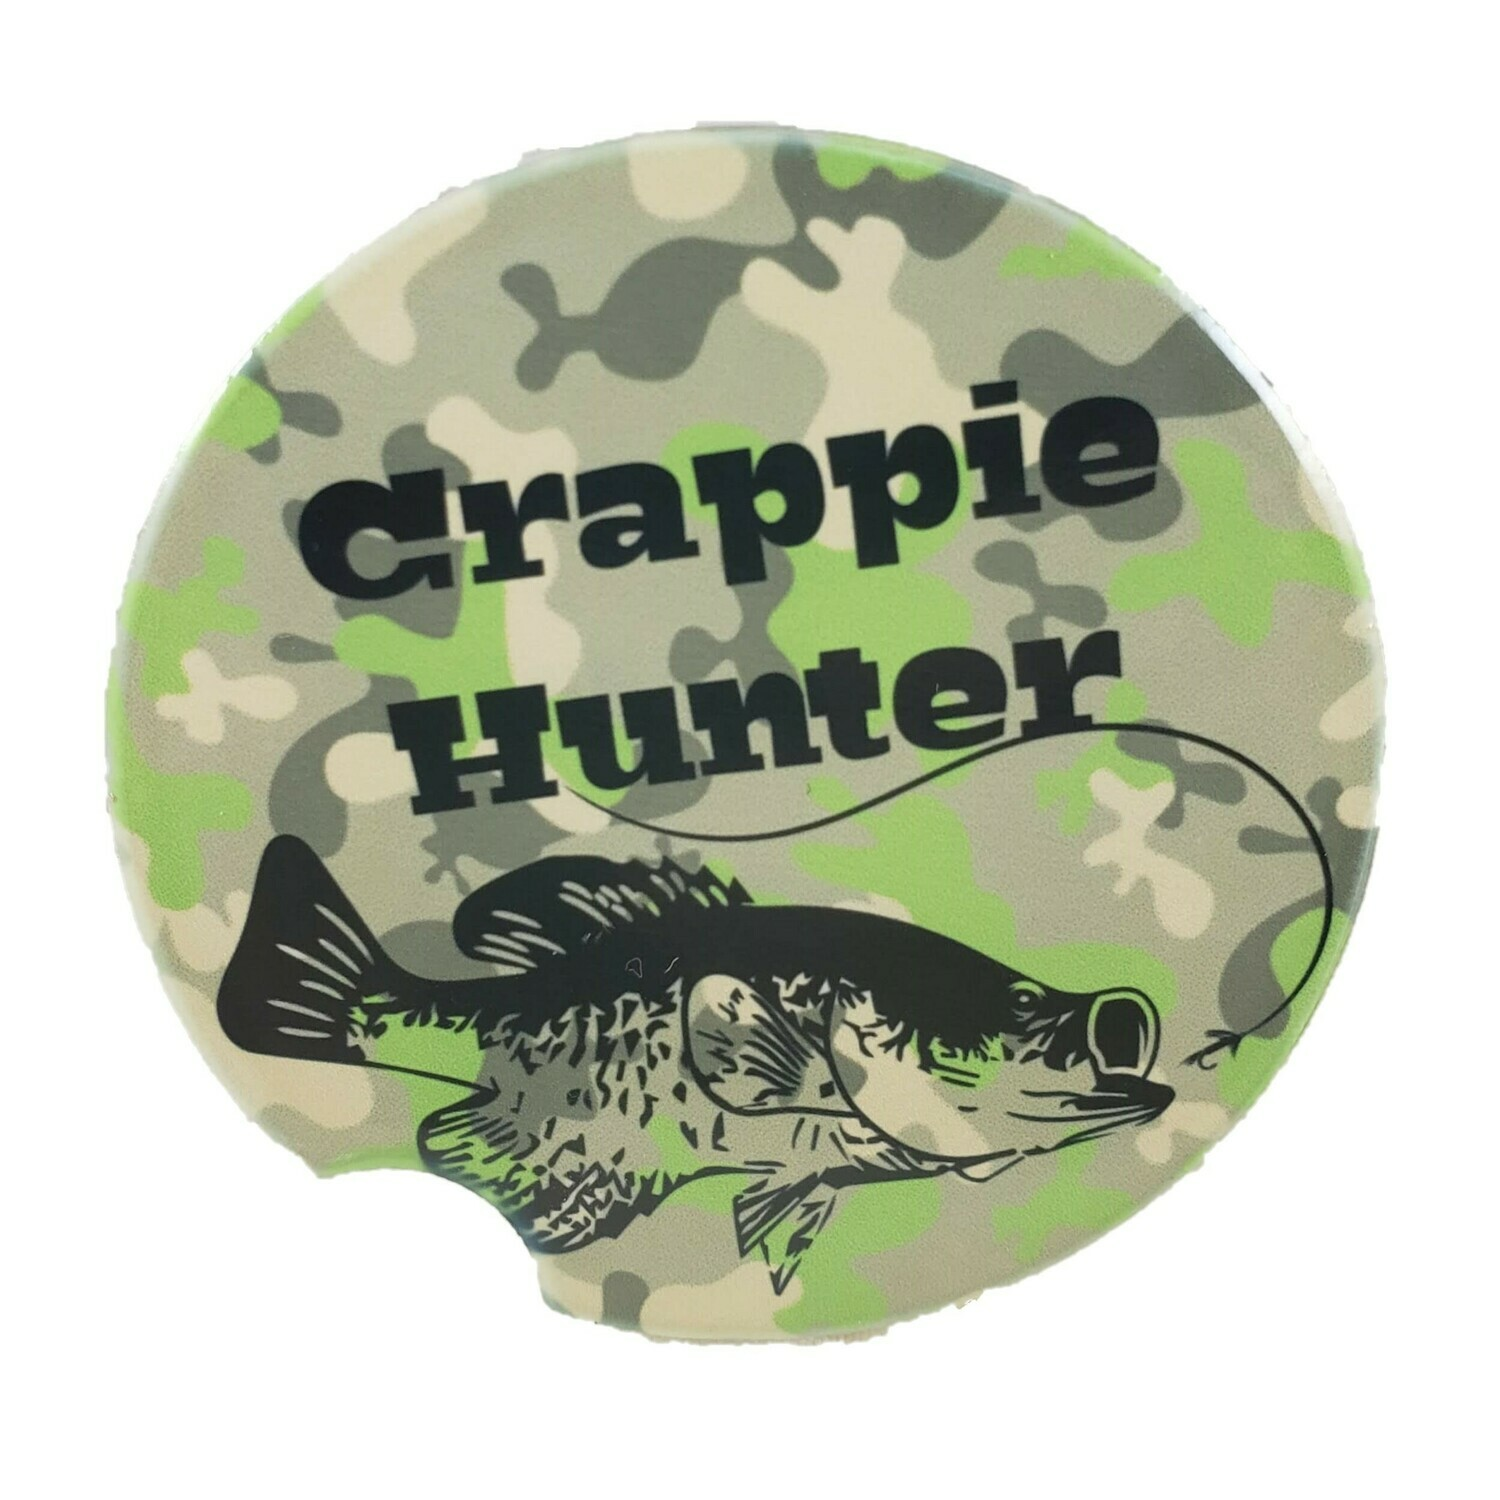 Crappie Hunter Ceramic  Car Coaster - Set of Two